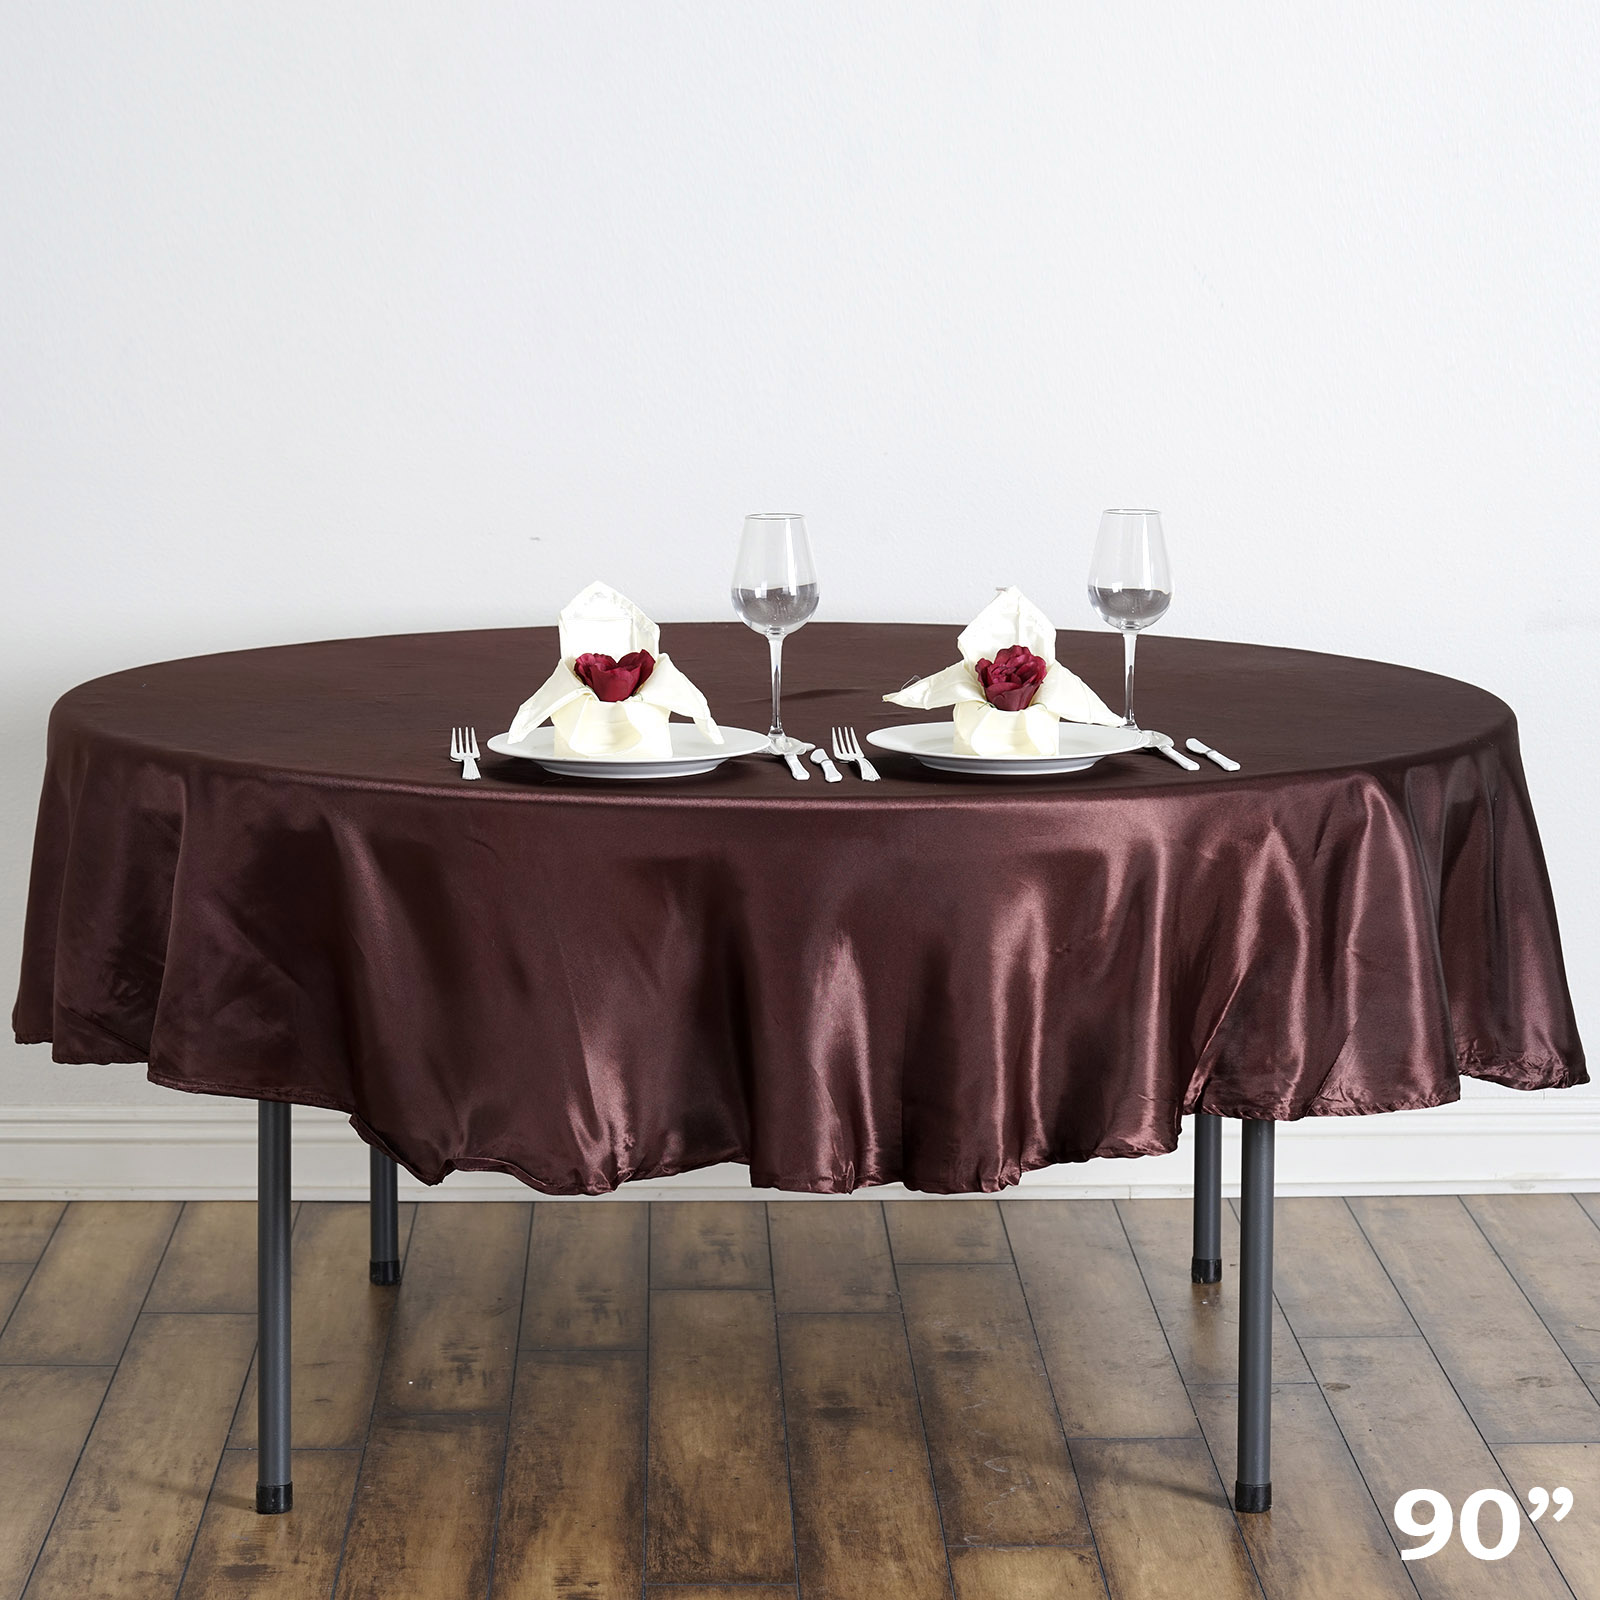 Kitchen & Table Linens Keep your kitchen and dining room looking stylish with our collection of tablecloths, runners, placemats, kitchen towels, and much more in a huge variety of colors, shapes, and patterns designed to go well with any décor style.